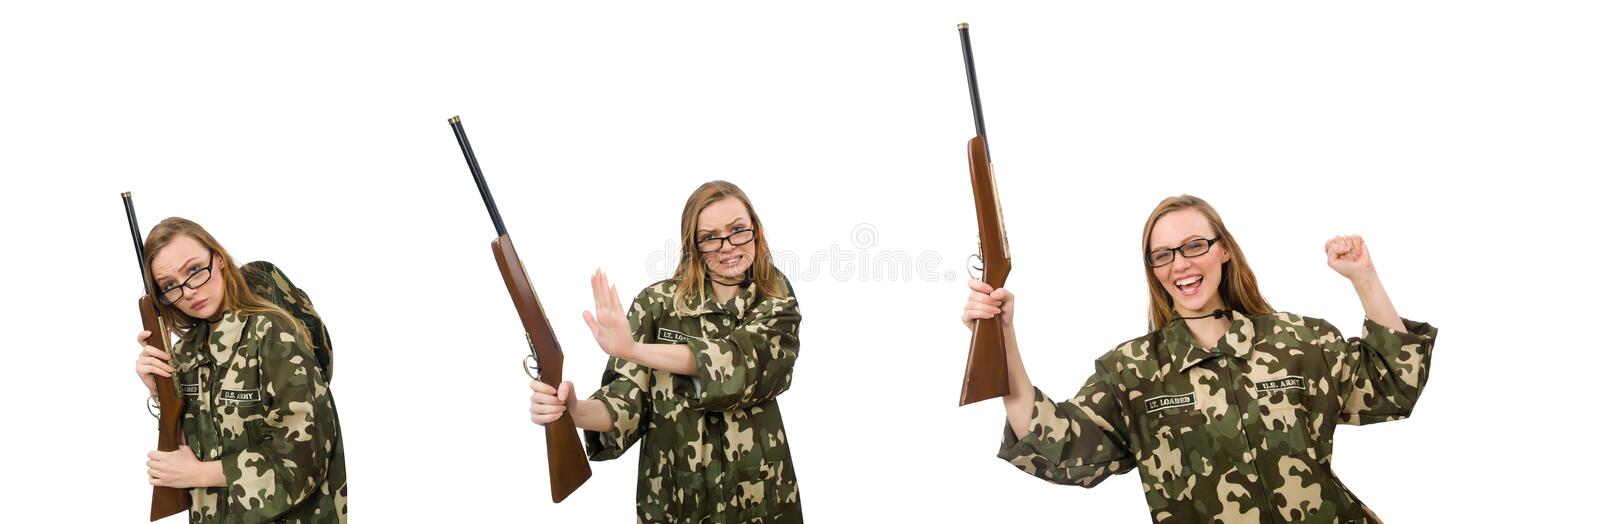 Girl in military uniform holding the gun isolated on white stock image